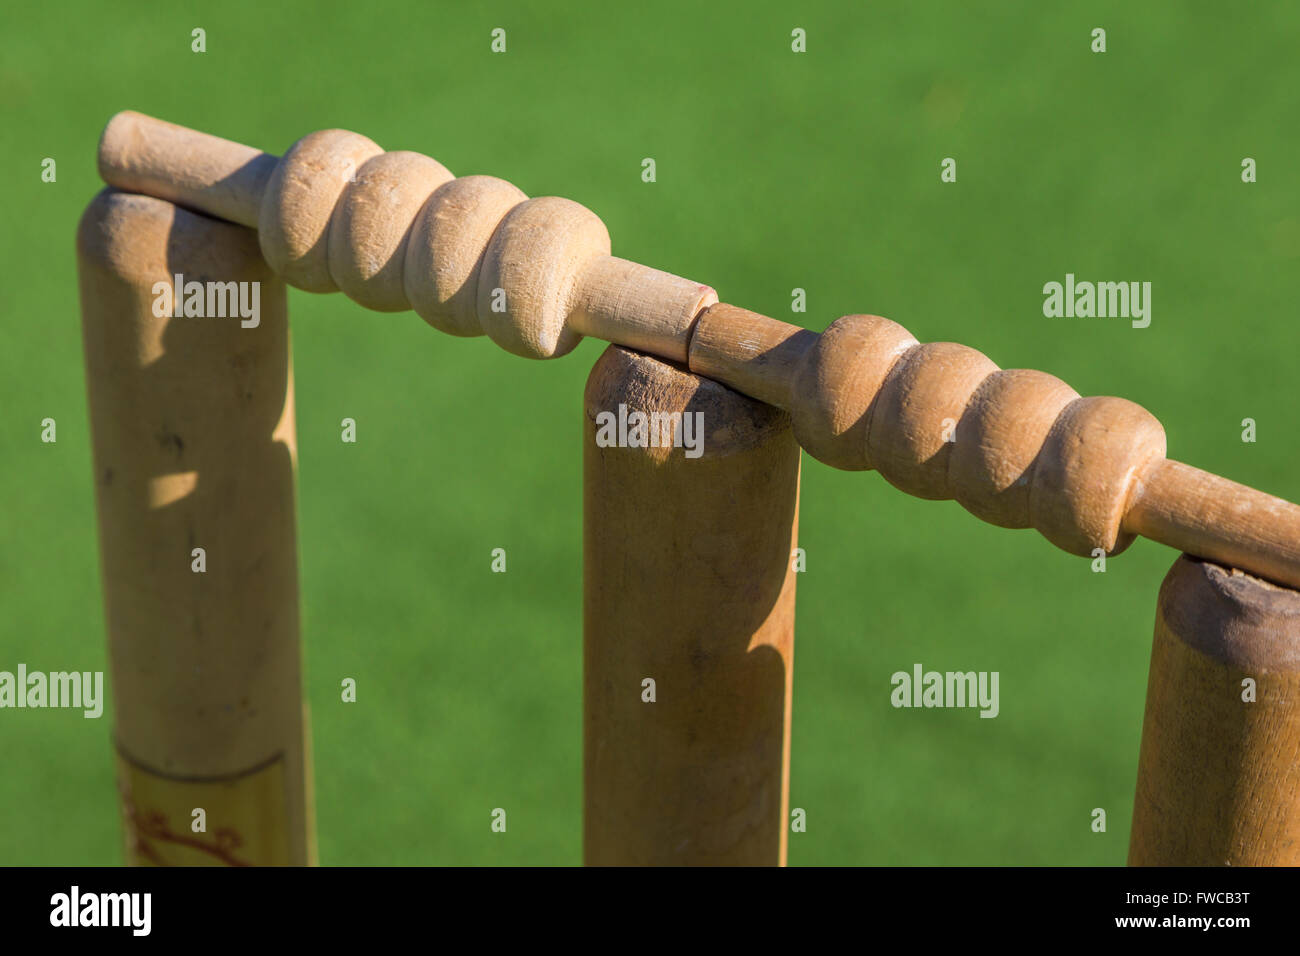 Well used cricket stumps and bails set up on pitch.  Grassy green background. - Stock Image